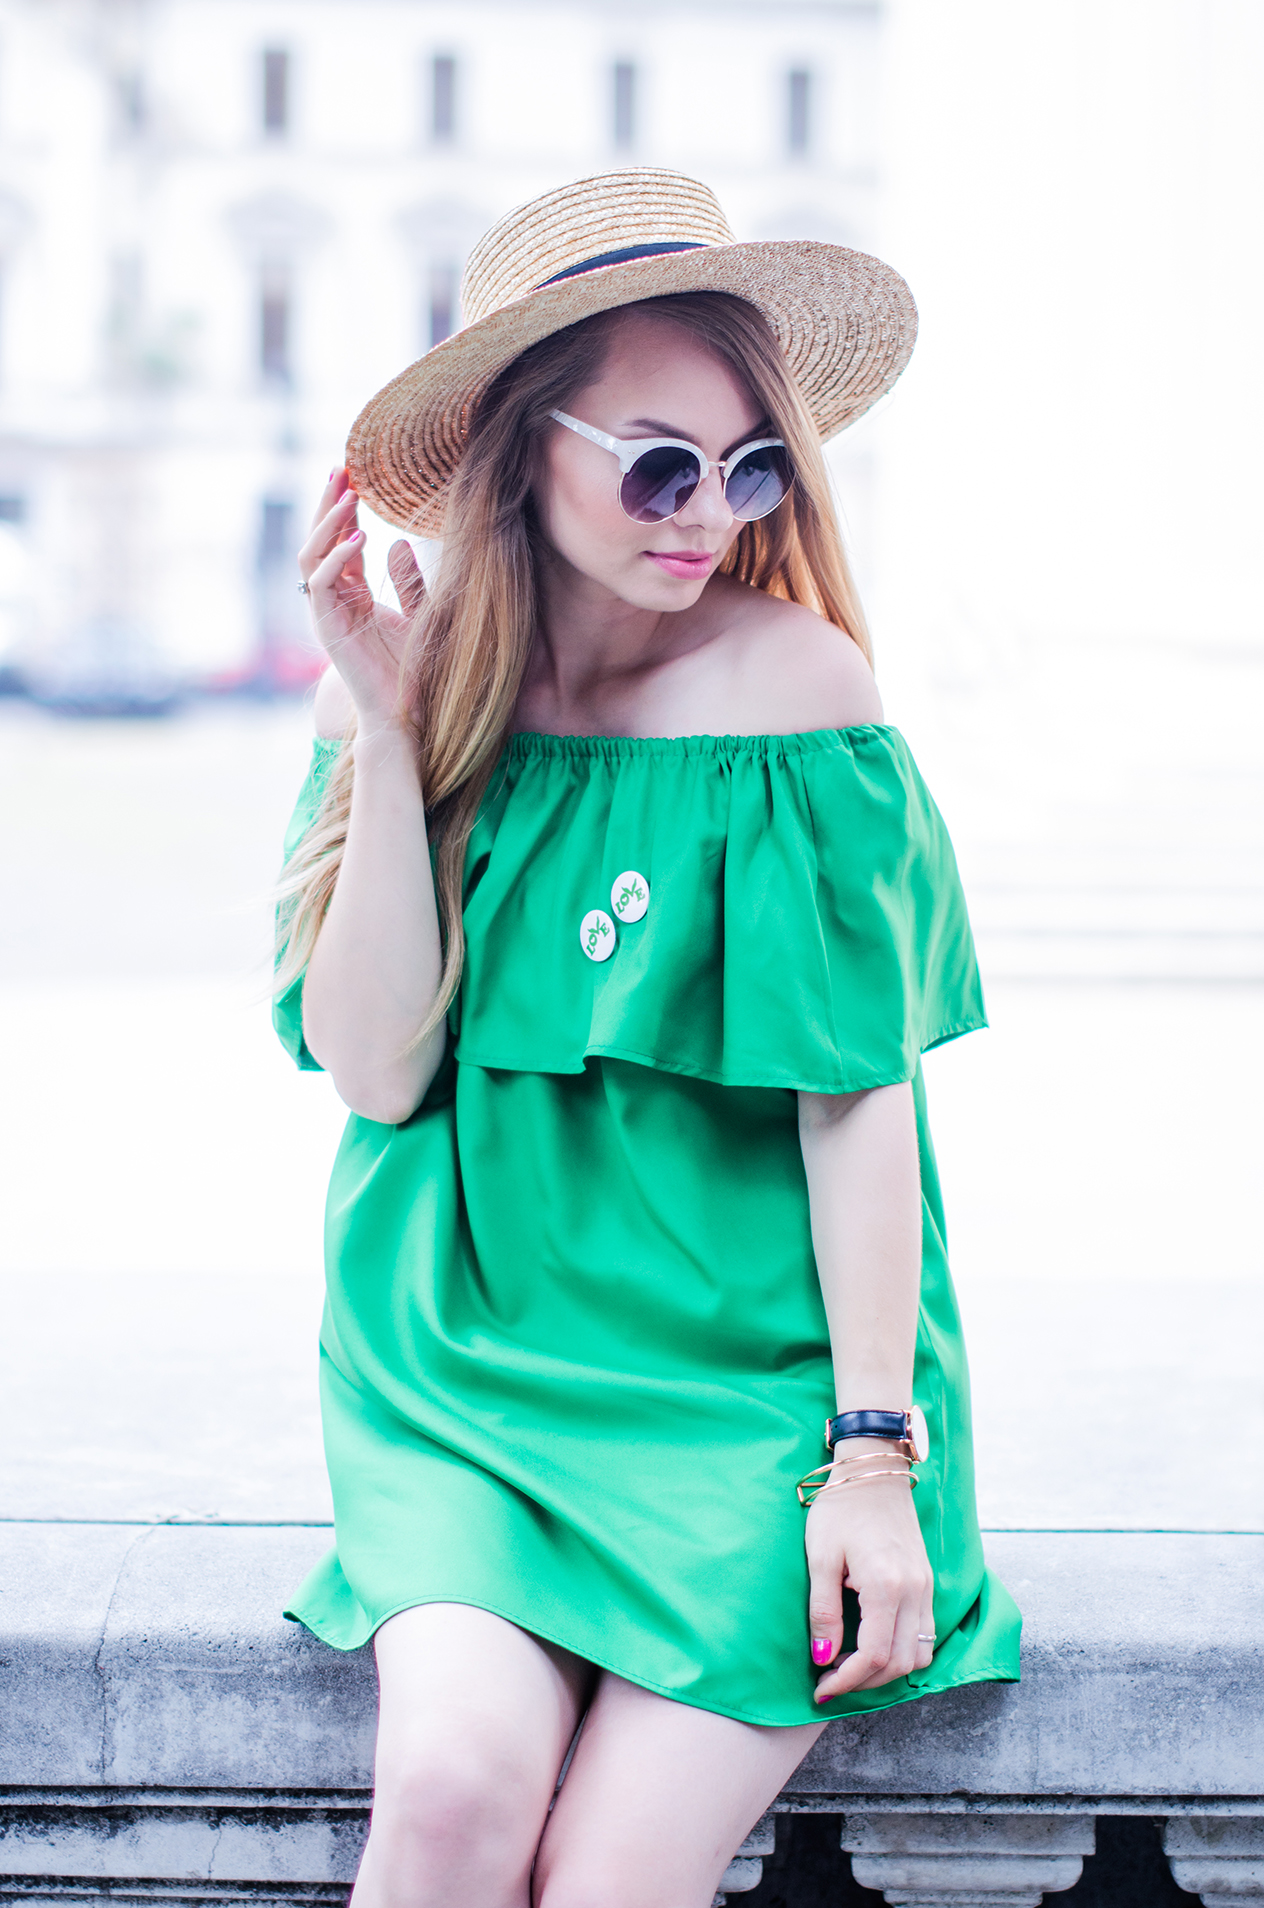 off-shoulder-dress-hm-straw-hat-strappy-shoes (5)